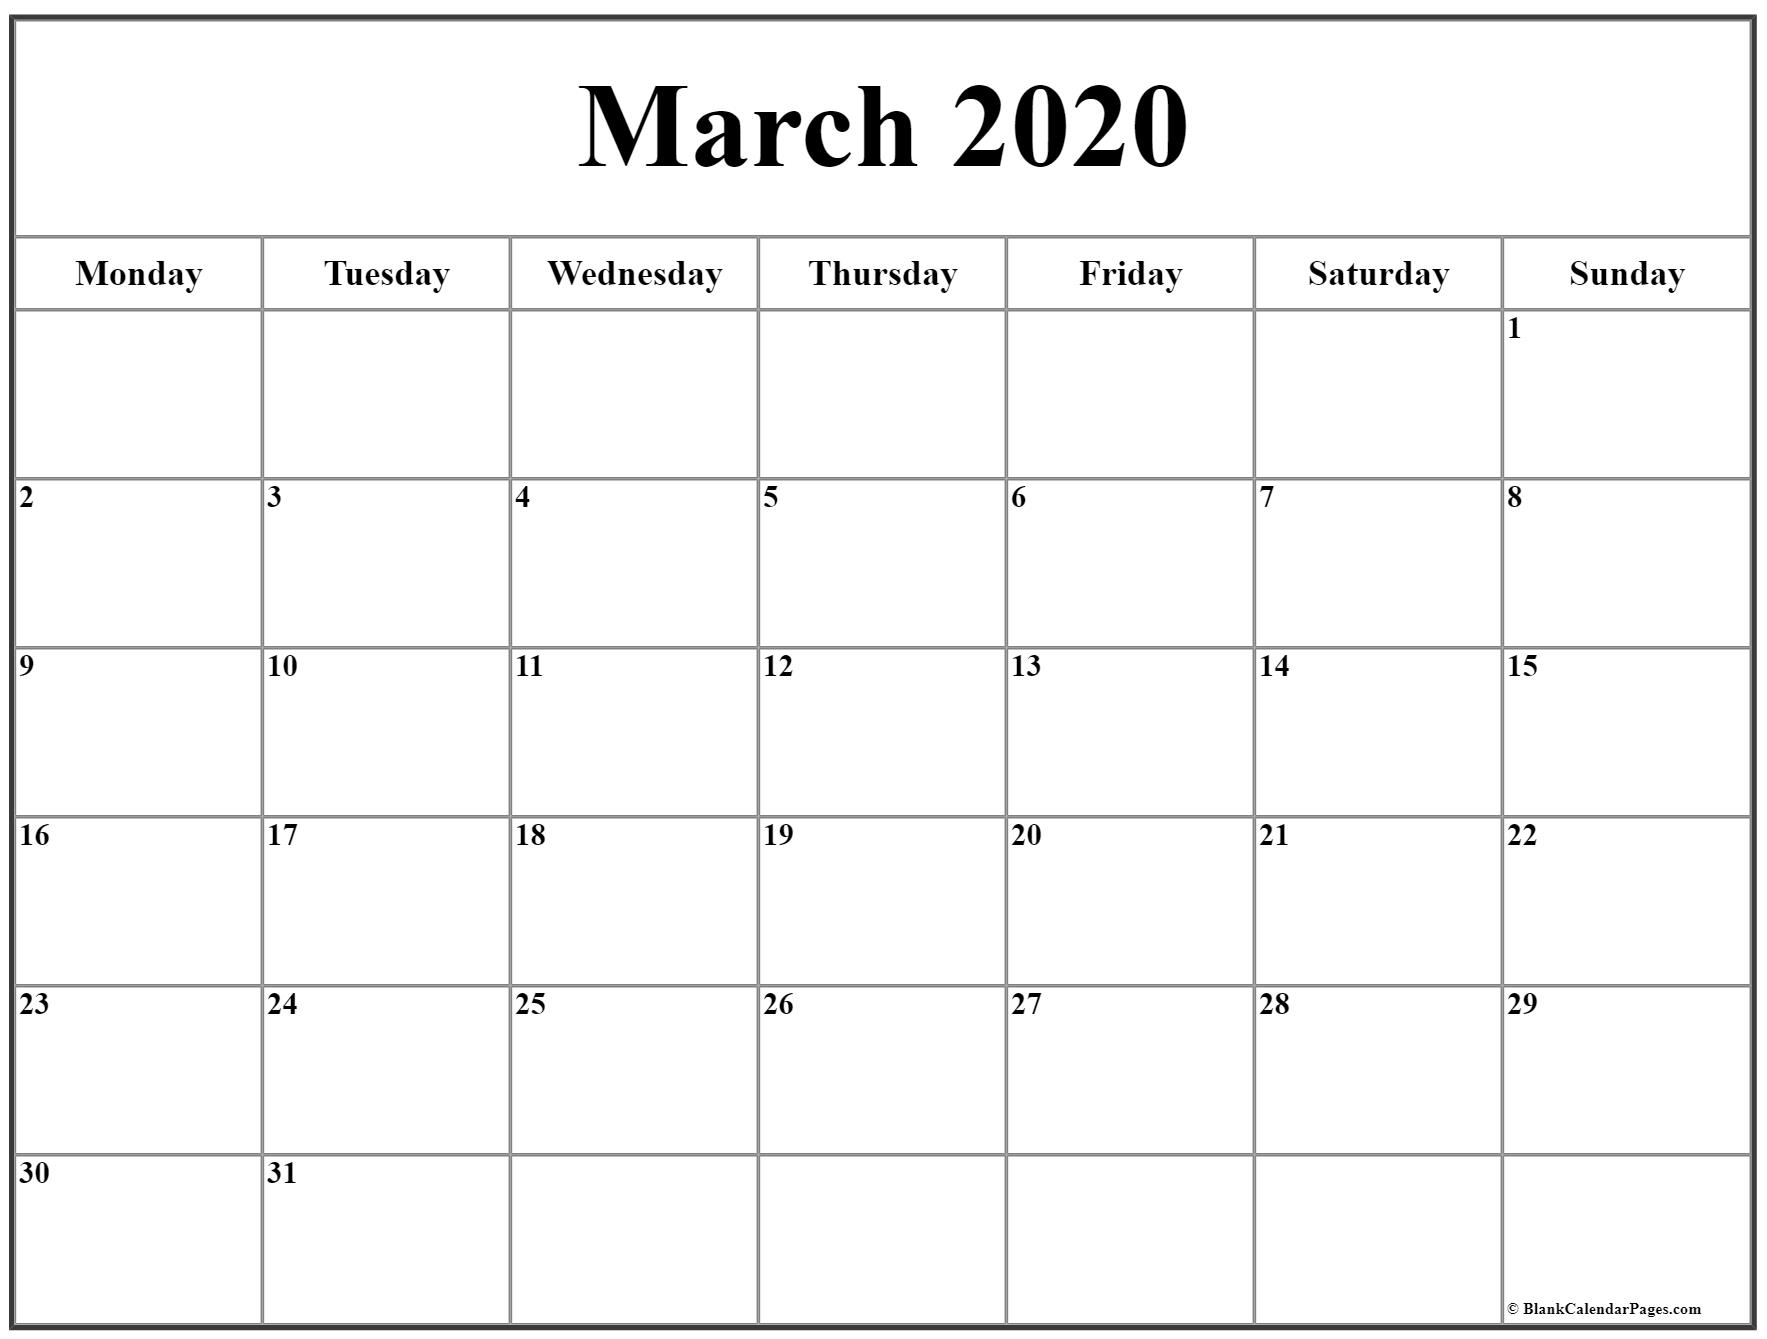 March 2020 Monday Calendar | Monday To Sunday intended for Calendar Sunday To Saturday 2020